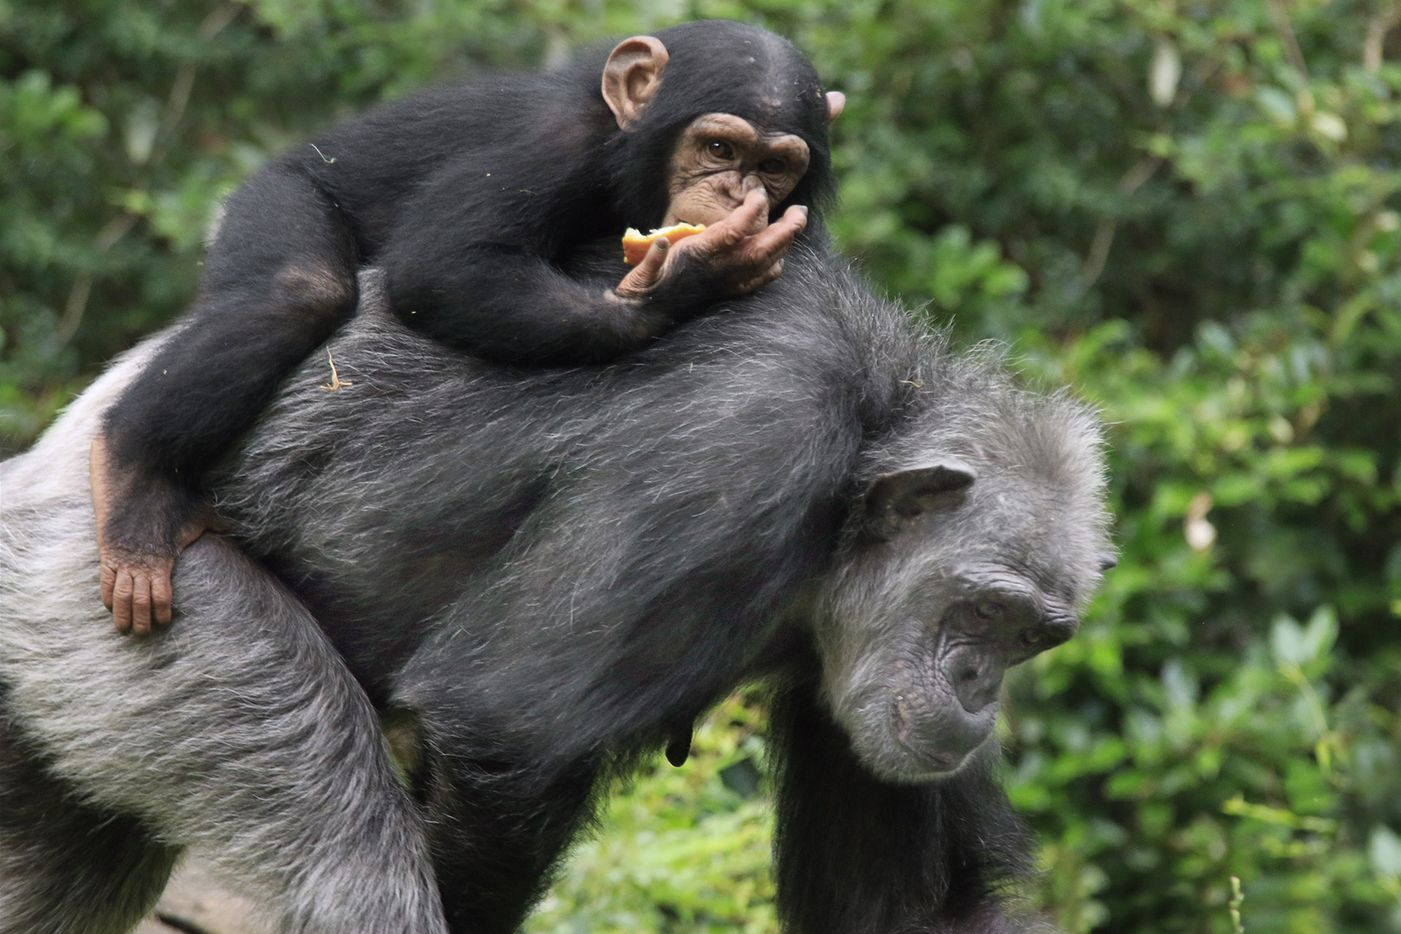 Ramona carries Mshindi on her back at the Dallas Zoo. The young chimp is 4-years-old.